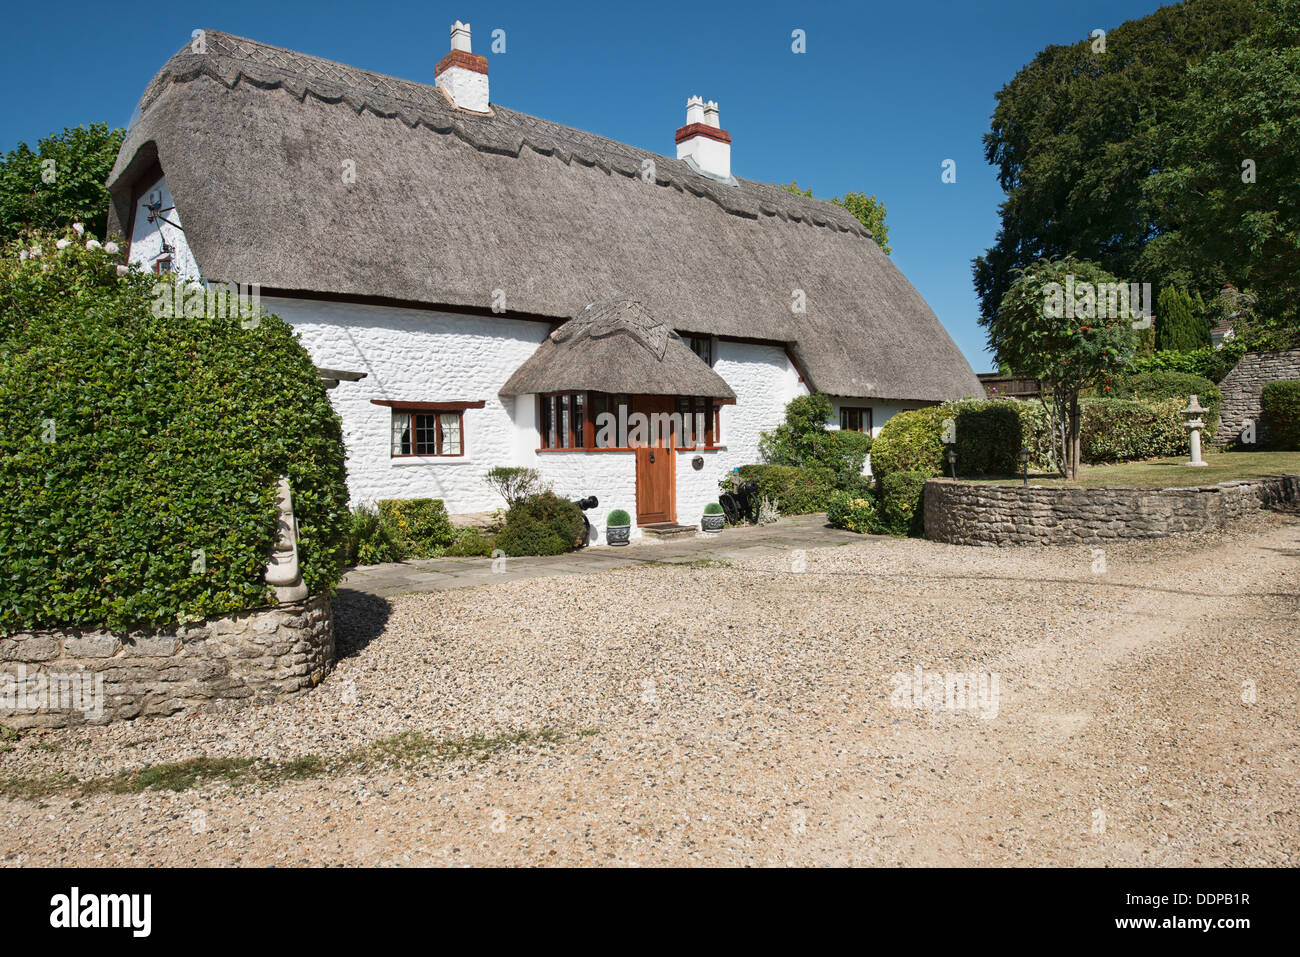 A beautiful traditional English country cottage with thatched roof in Stanton Fitzwarren, Wiltshire, England, UK - Stock Image